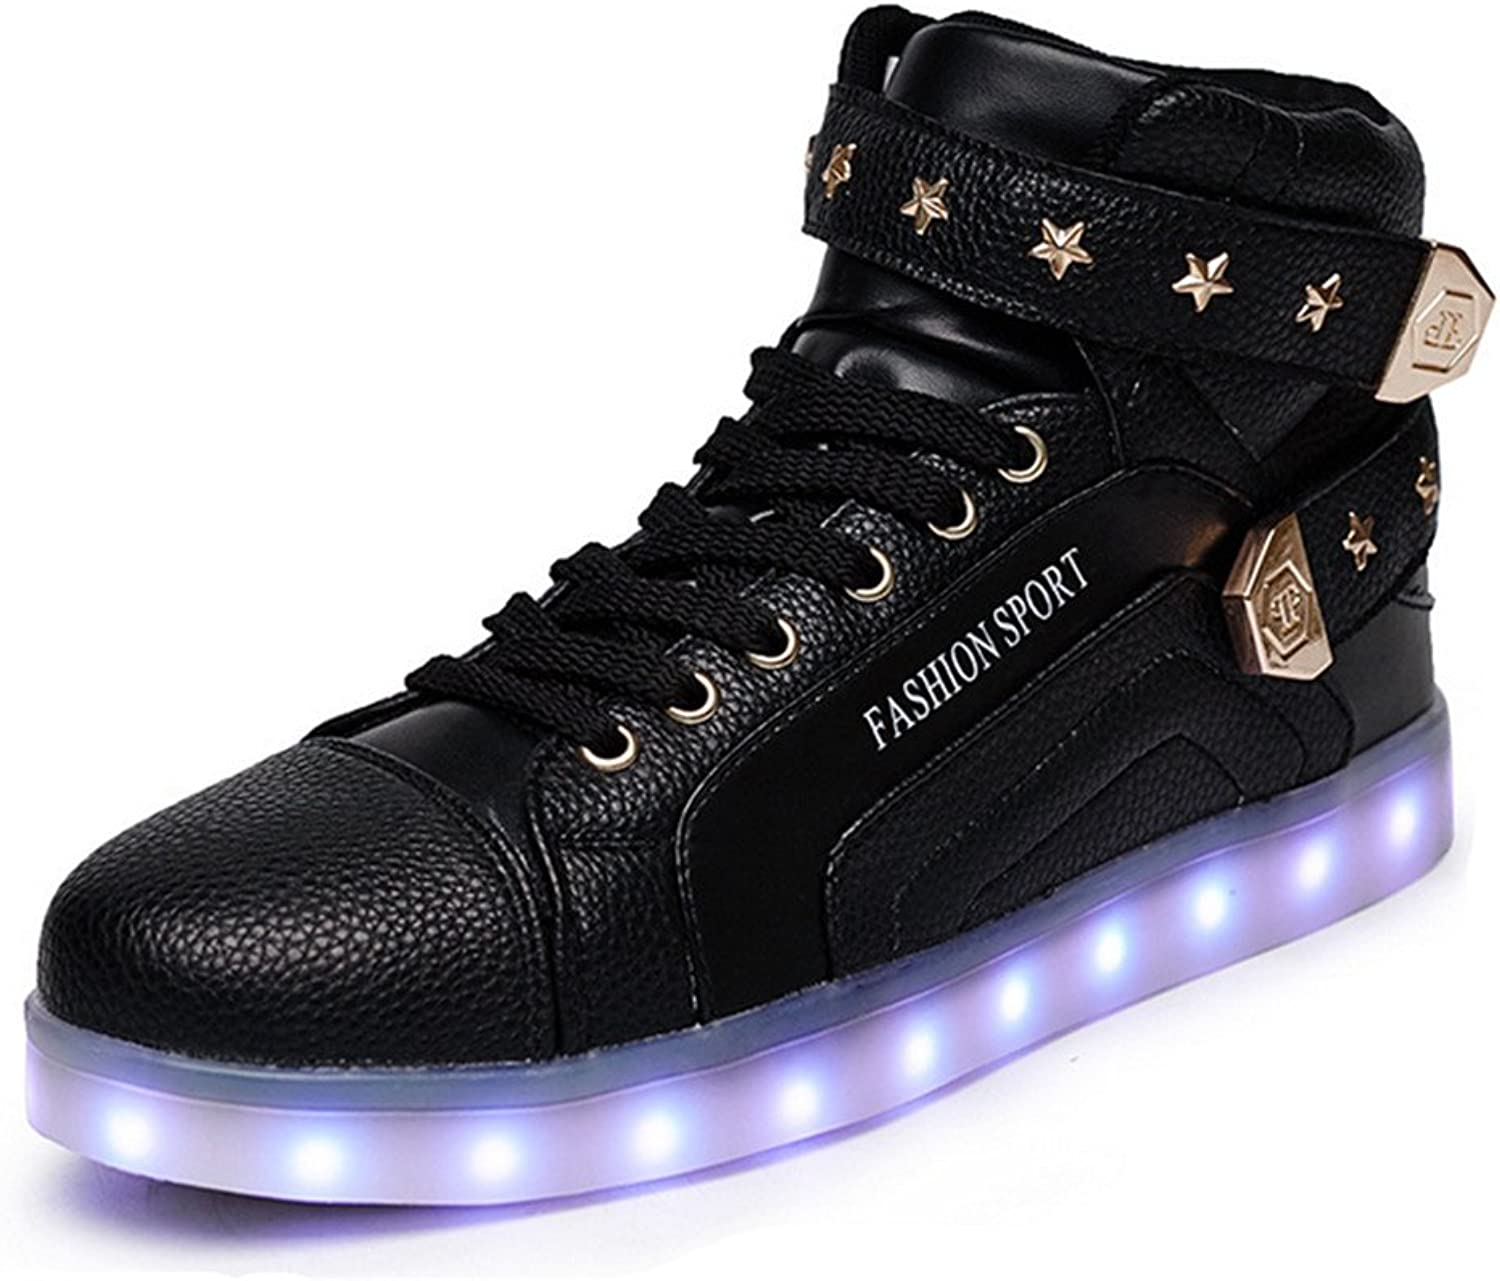 Edv0d2v266 High Help Soft shoes Soft and Comfortable Button shoes Casual shoes LED Light shoes shoes